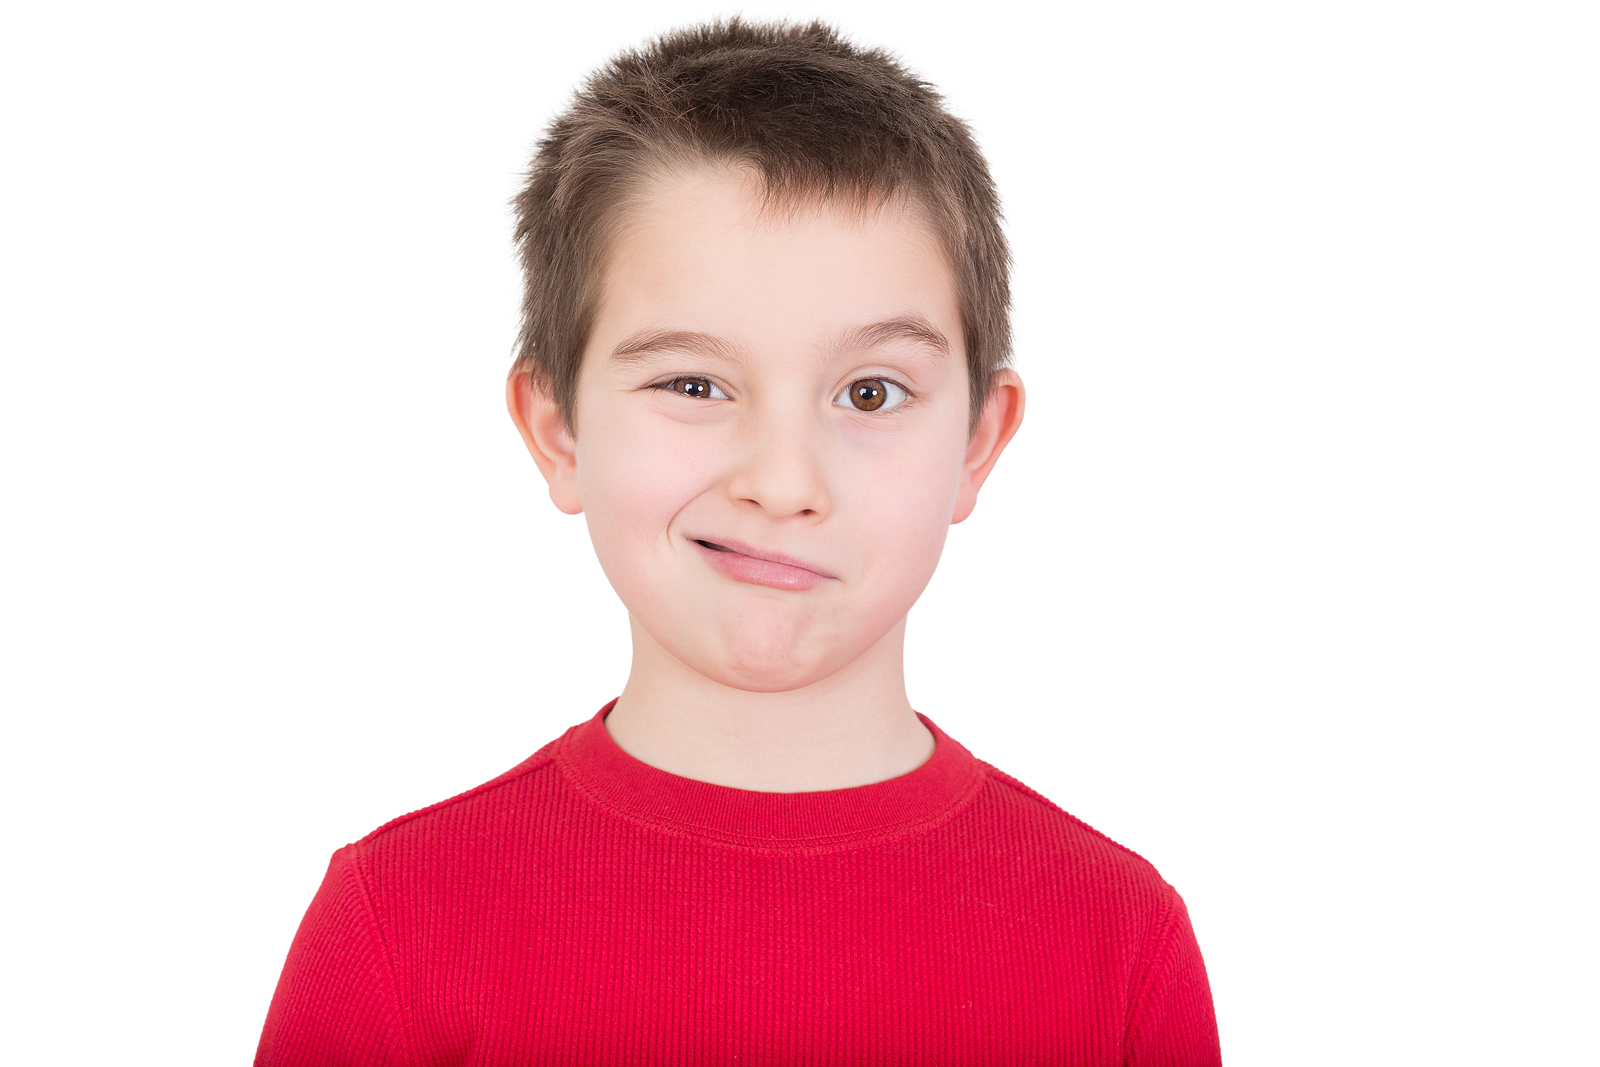 tourettes syndrome in children Document detail tourette's syndrome in children medline citation: pmid: 12791197 owner: nlm status: publisher abstract/otherabstract: this paper will provide a review of the tourette's syndrome (ts) in children, focusing on treatment options, including a.